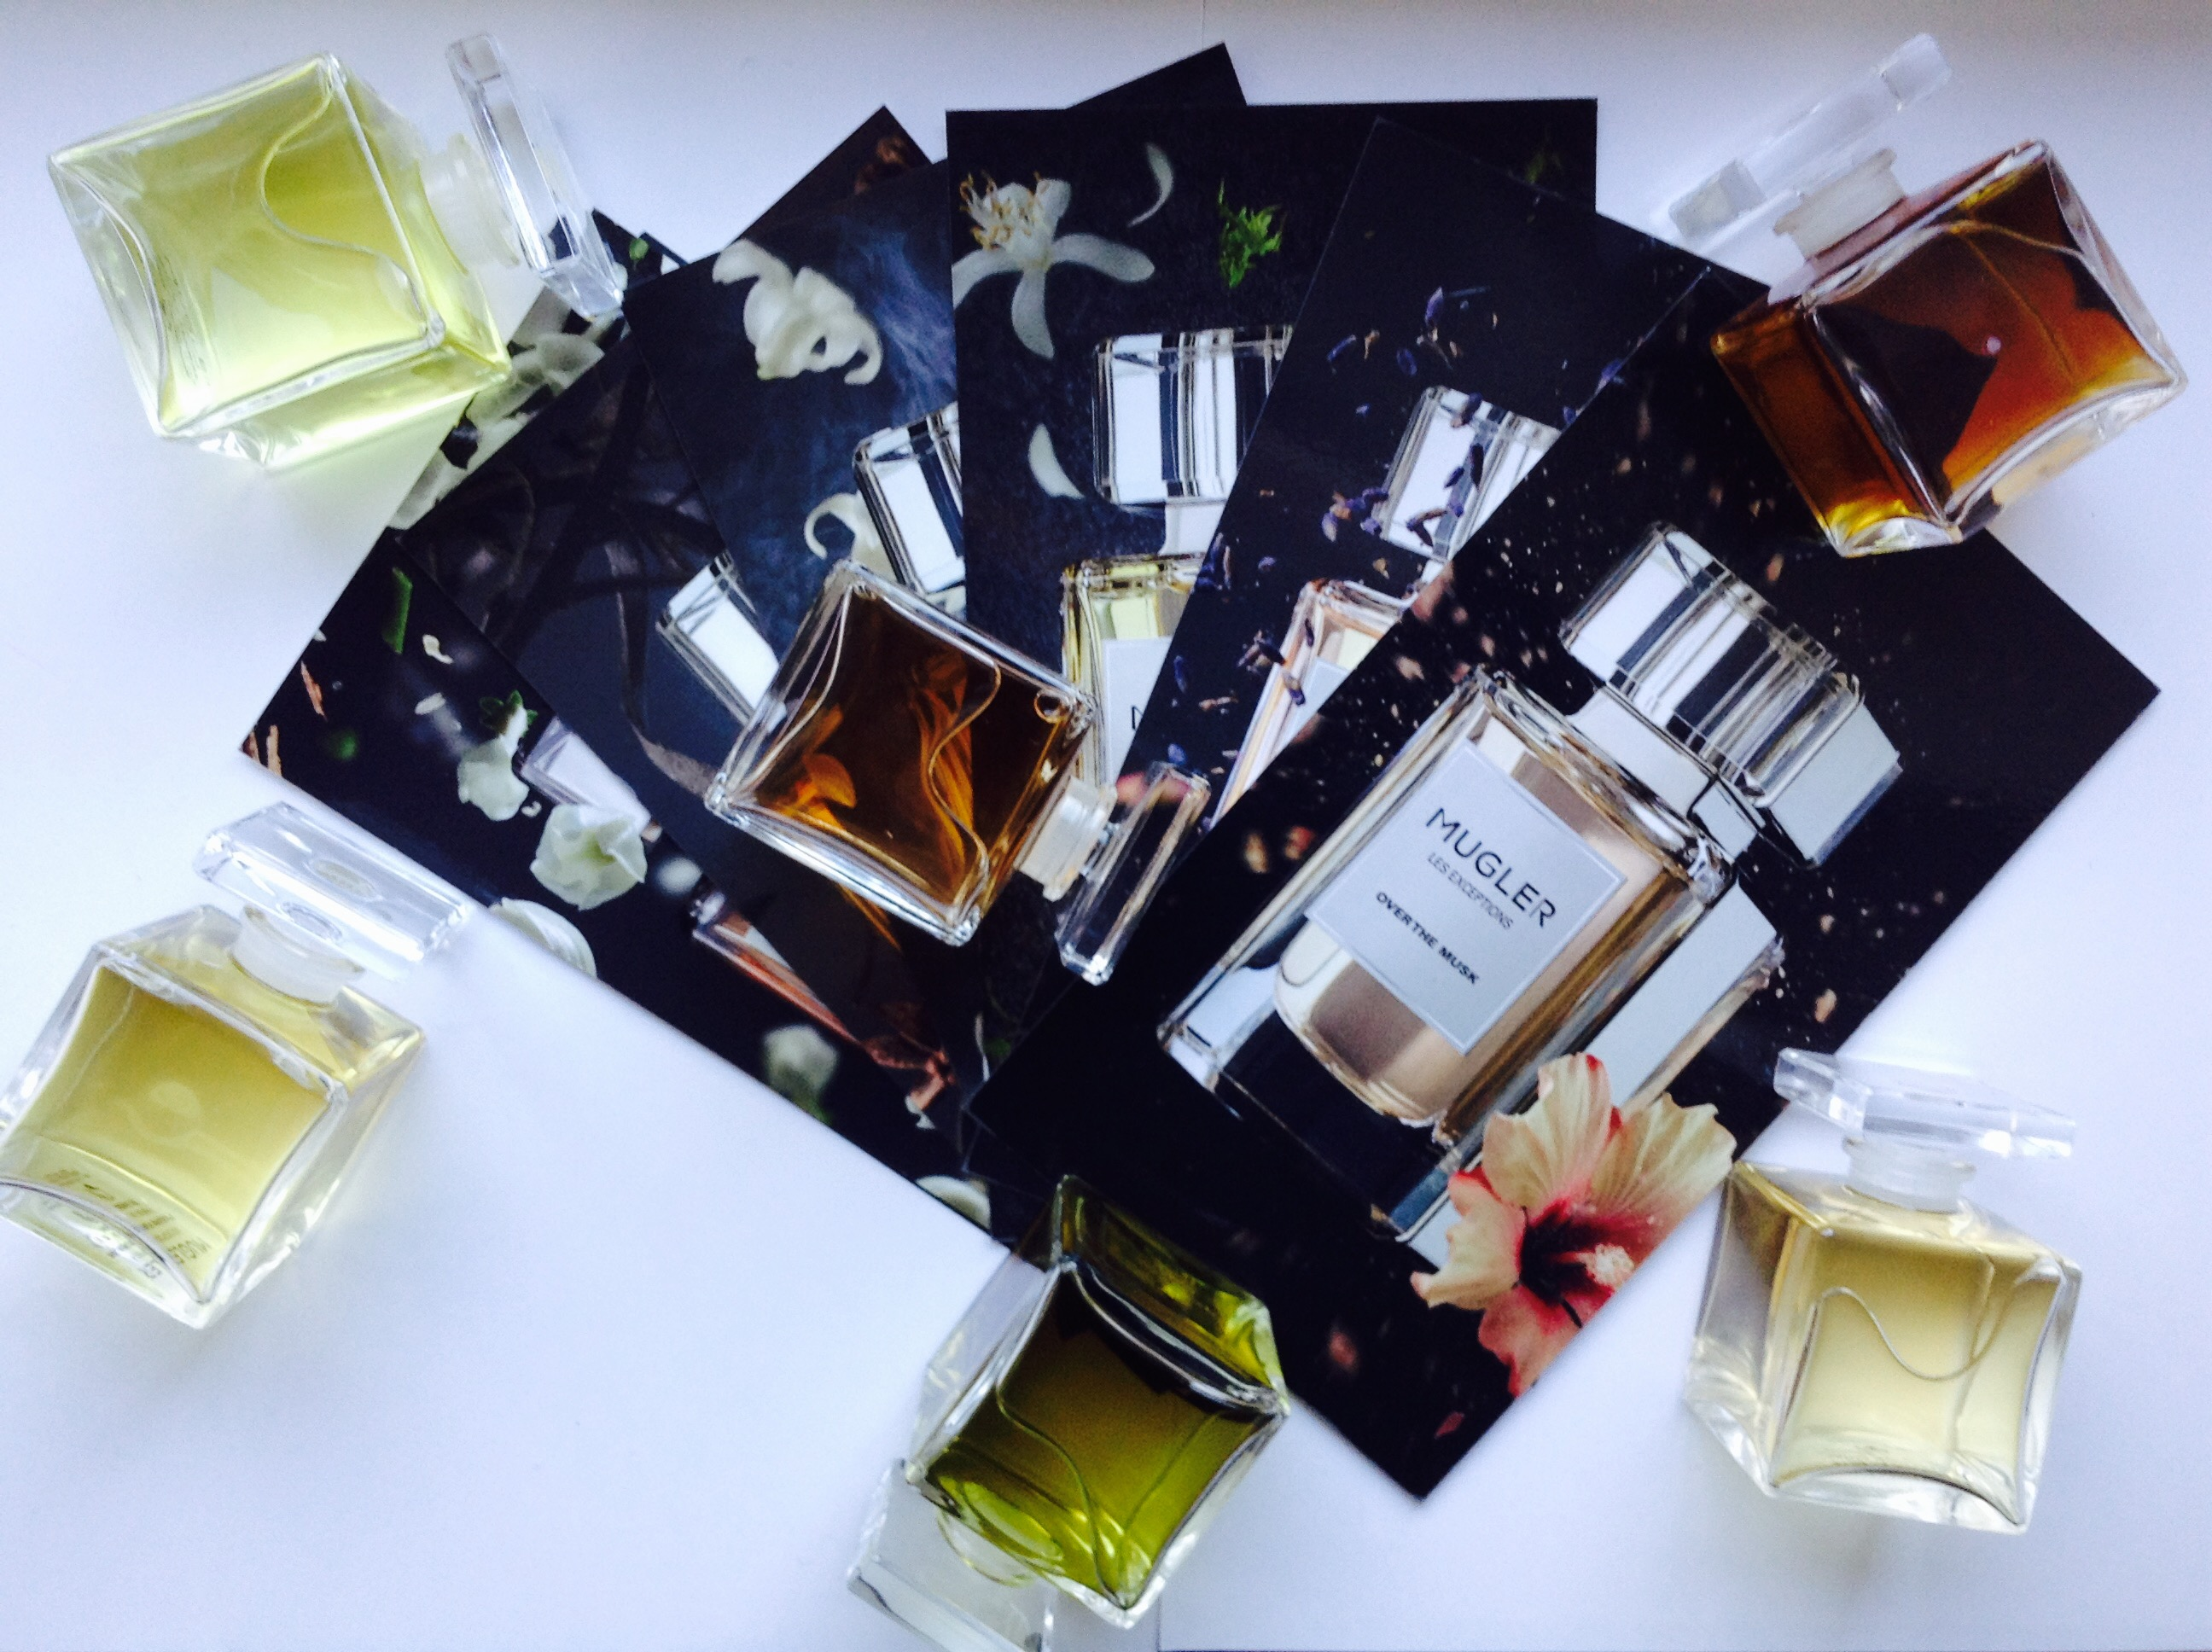 Mugler's Les Exceptions Fragrance Collection